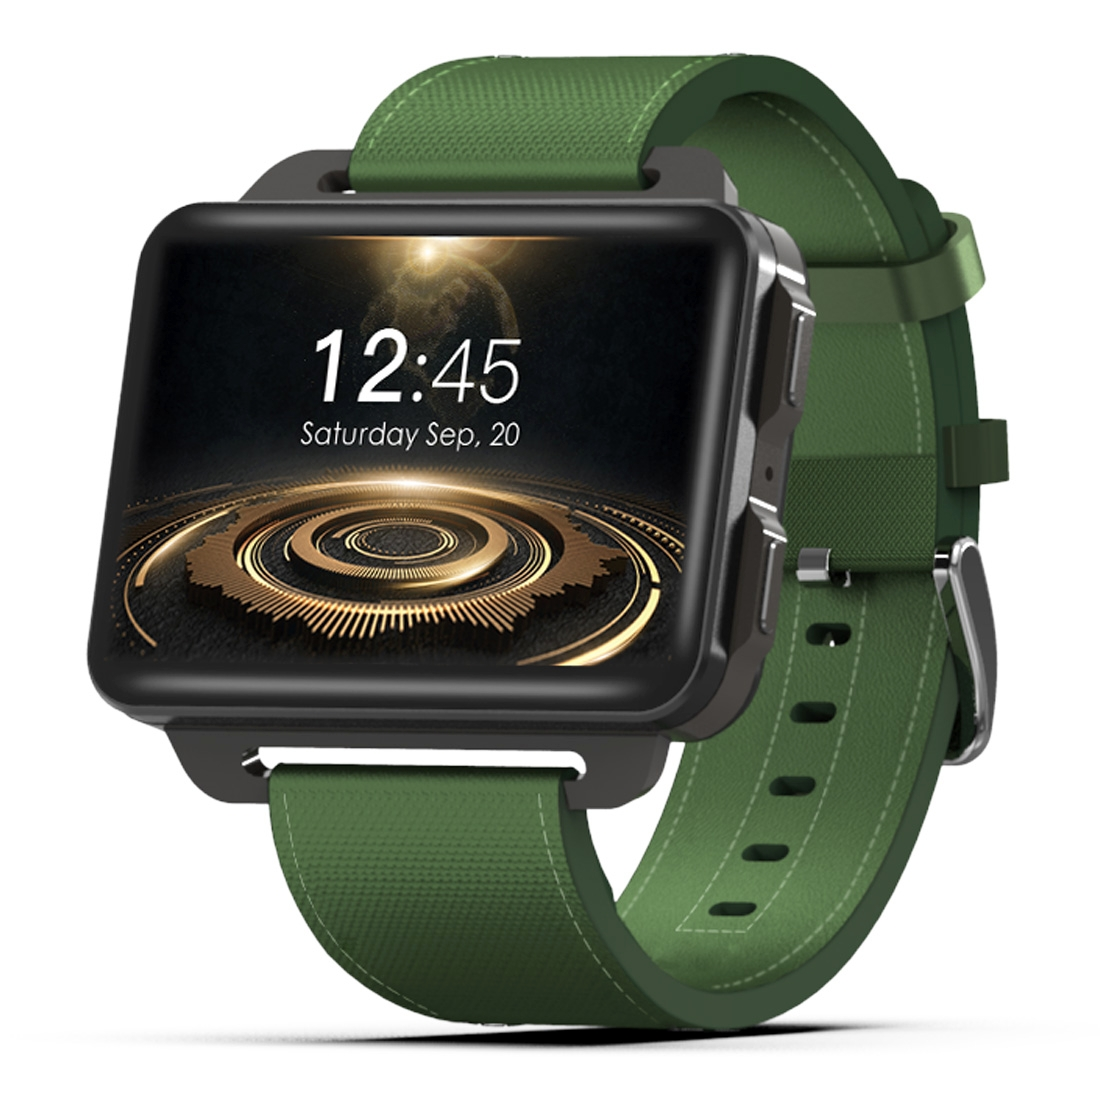 DOMINO DM99 Smart Watch Phone, 1GB+16GB, 2.2 inch Android 5.1, MTK6580 Quad Core 1.3GHz, Network: 3G, 1.3MP Camera / Heart Rate / Pedometer / GPS / WiFi / Bluetooth (Green)